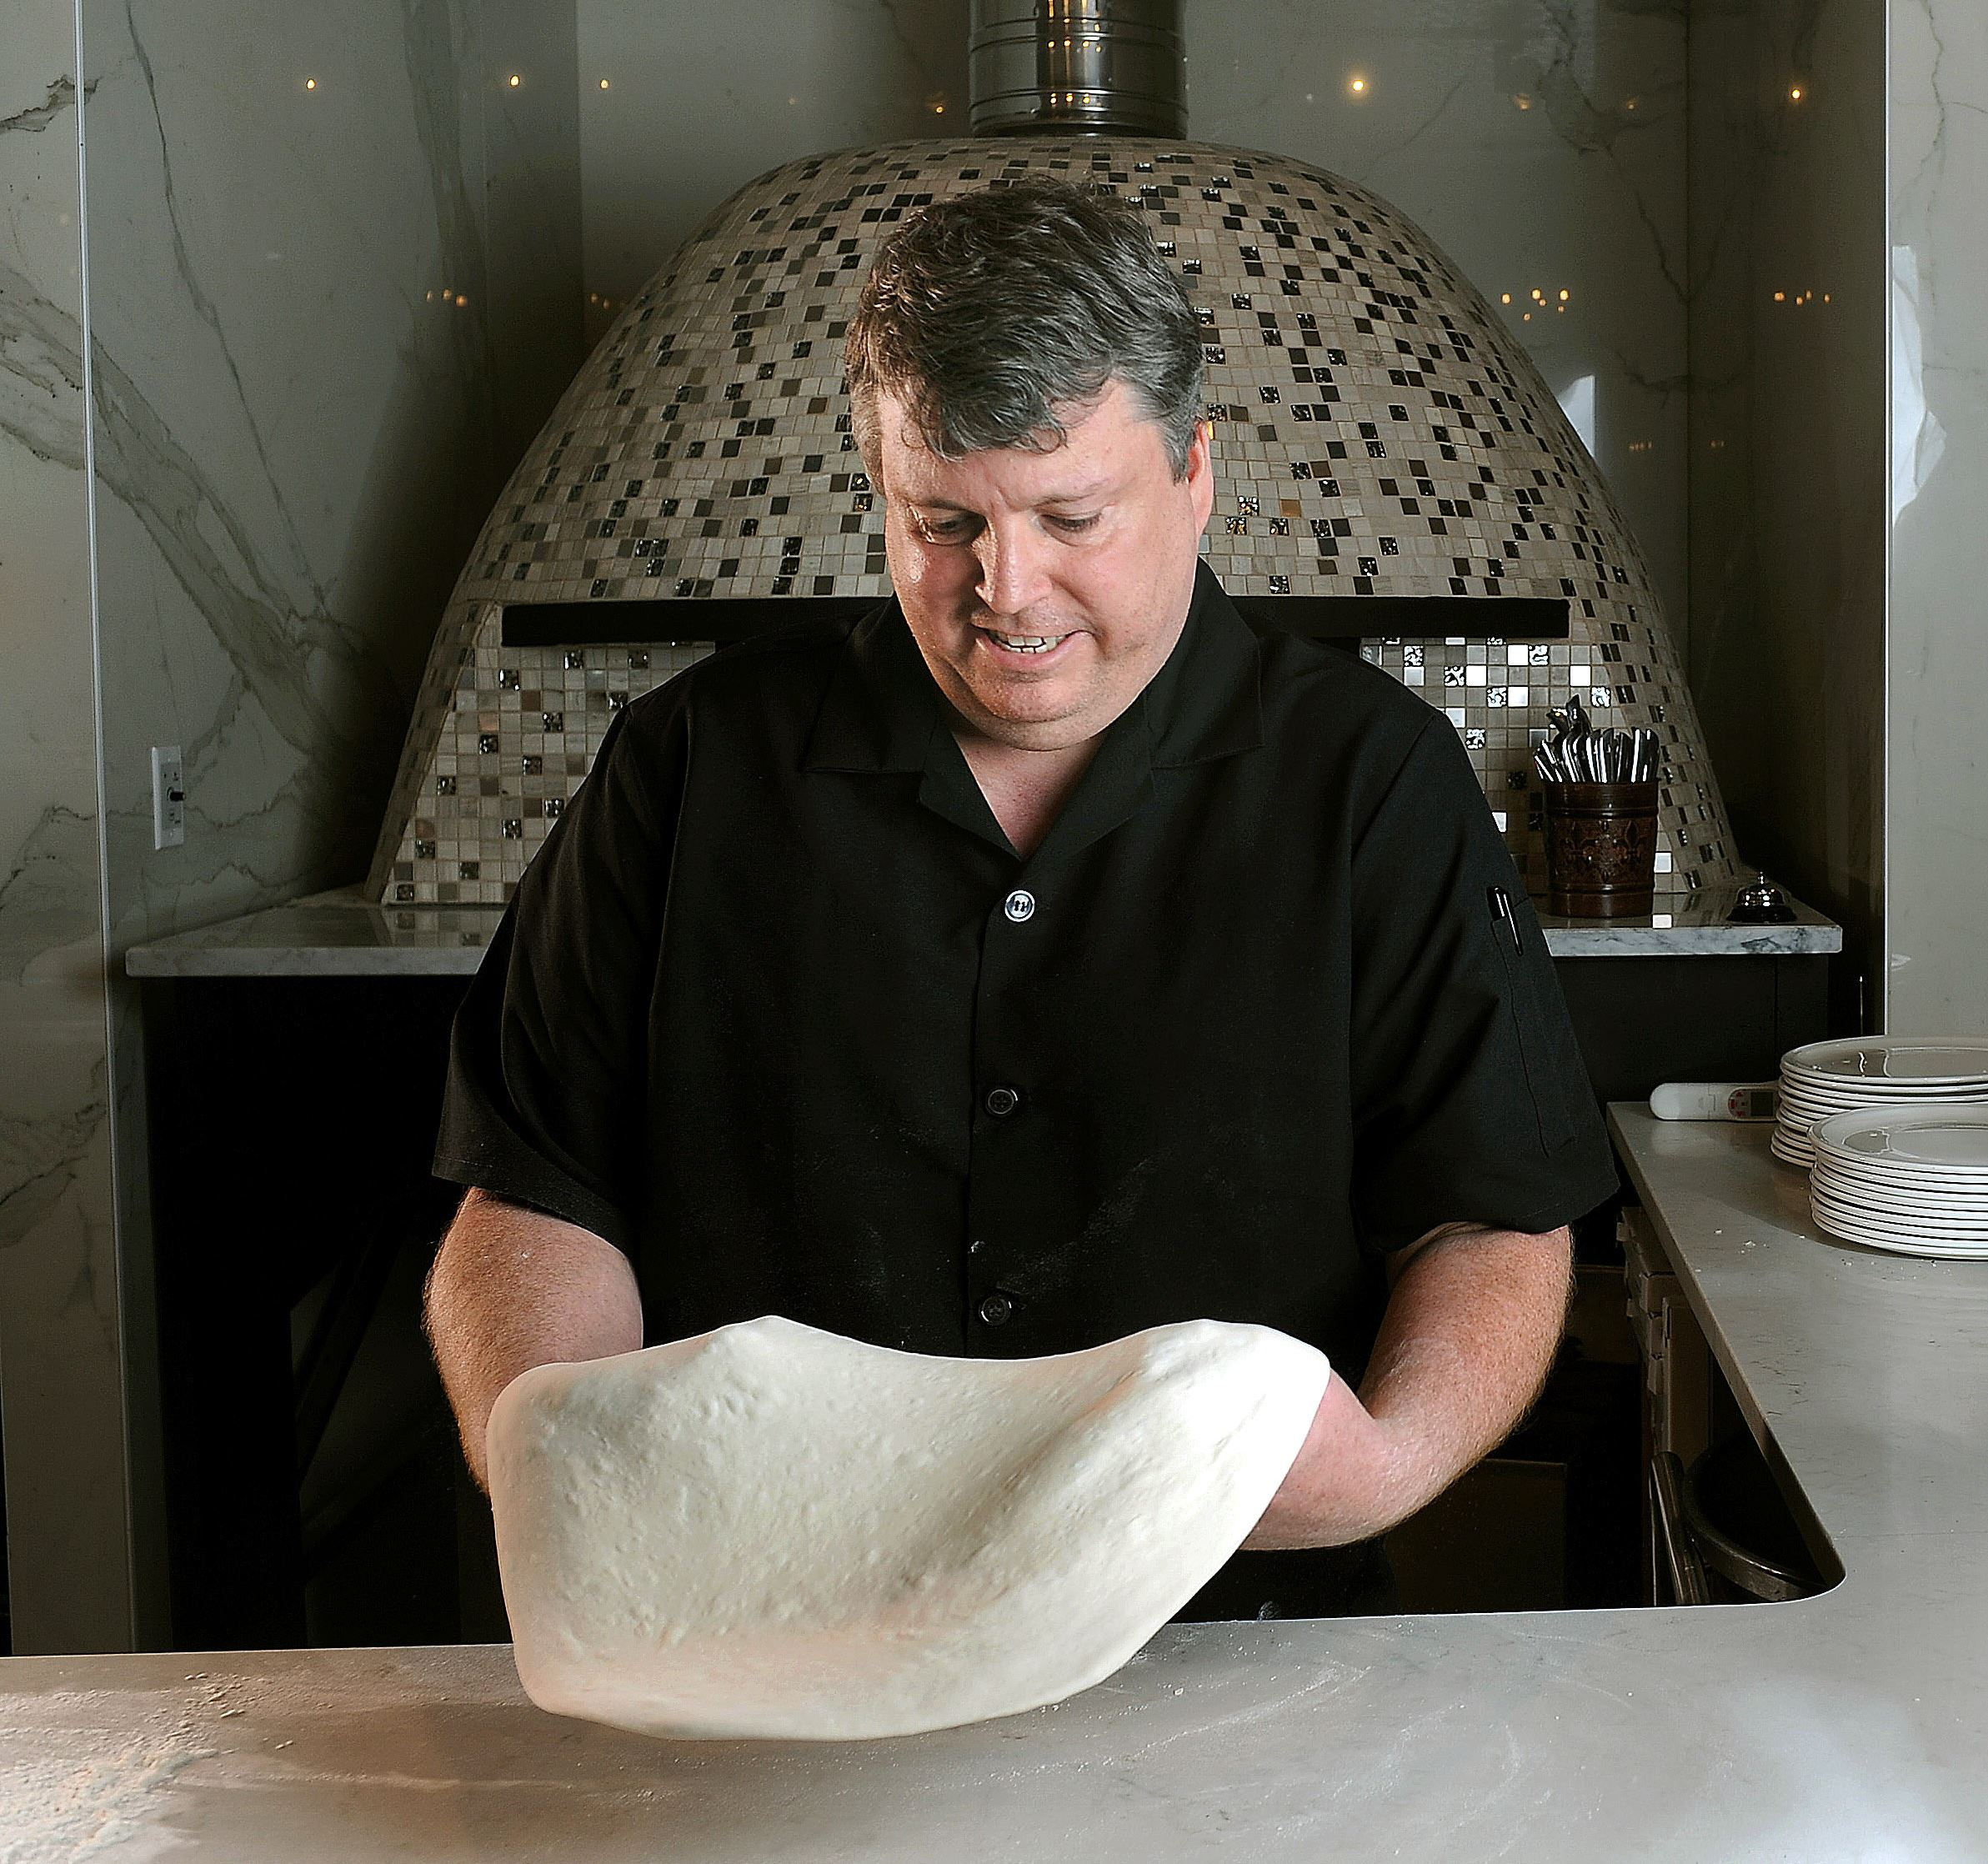 20170601ng-Pizzaiola3-2 Ron Molinaro, executive chef and owner of Il Pizzaiolo in Glenshaw, prepares a high-quality, Neapolitan-style pizza, in his restaurant.